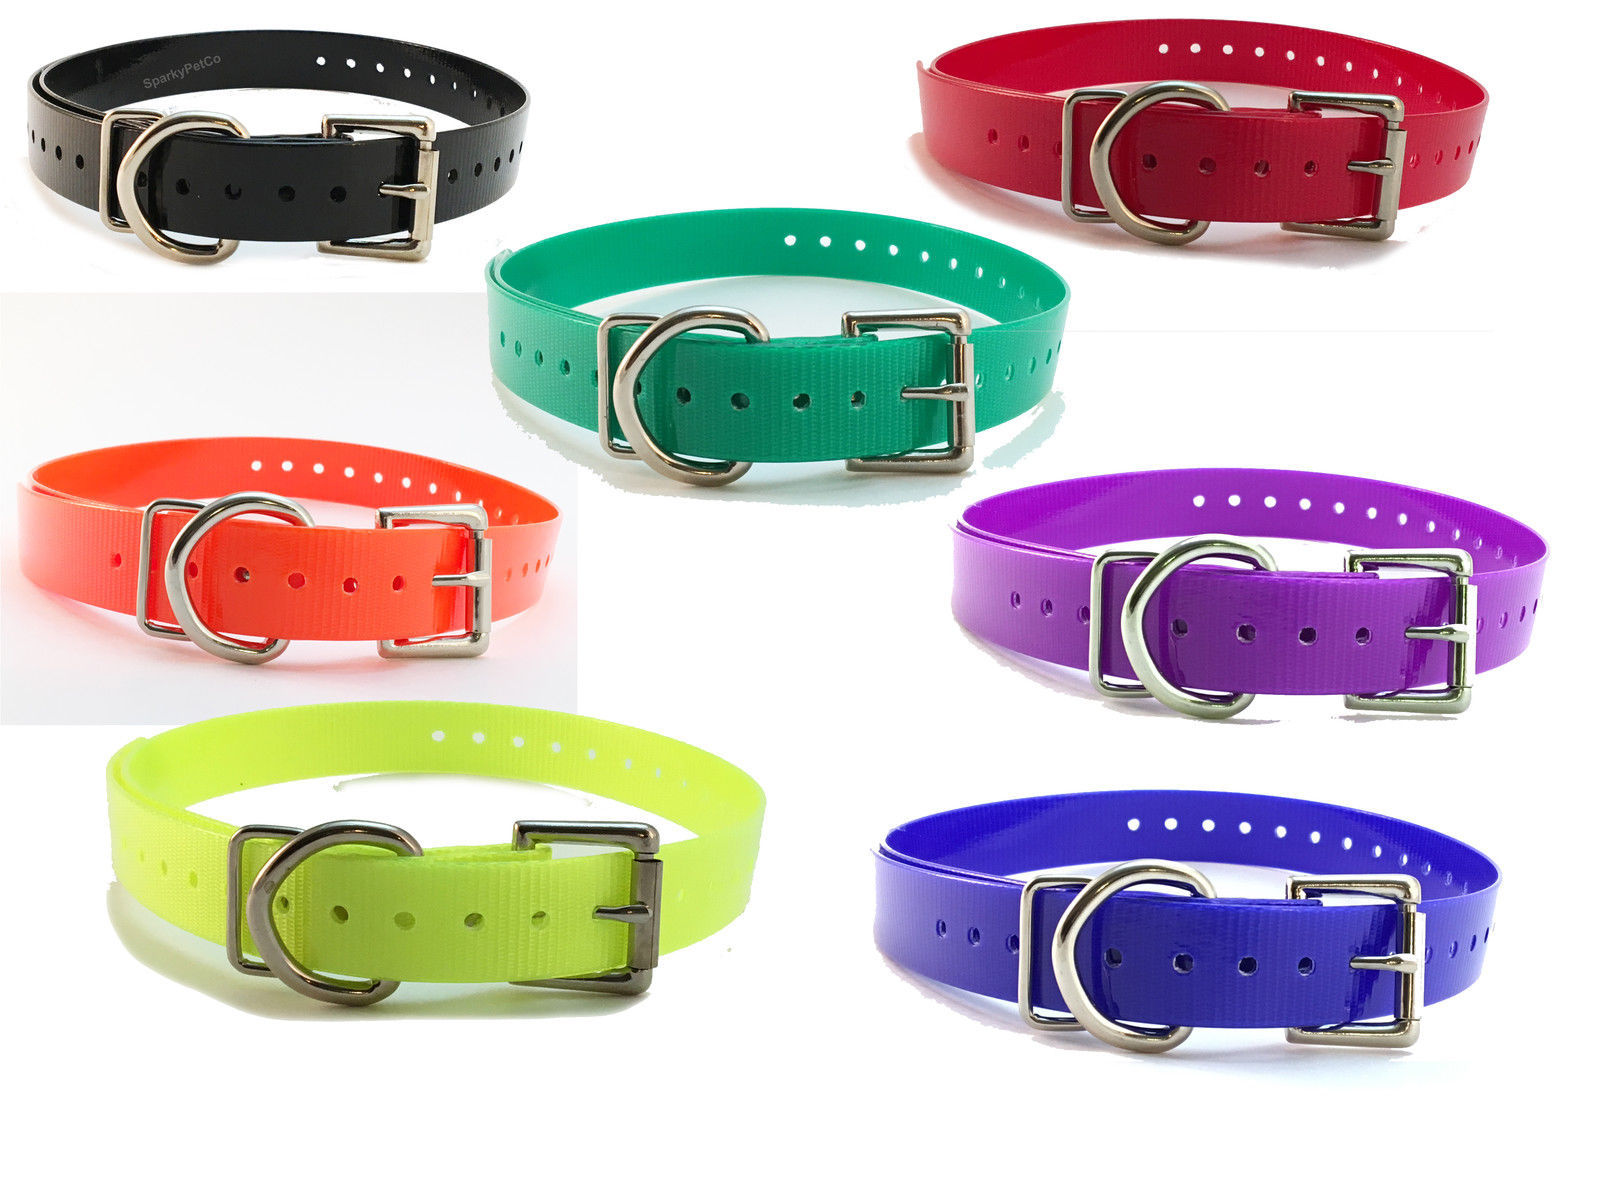 "Garmin Compatible 3/4"" Universal Replacement Strap-Made in the USA 7 Colors"